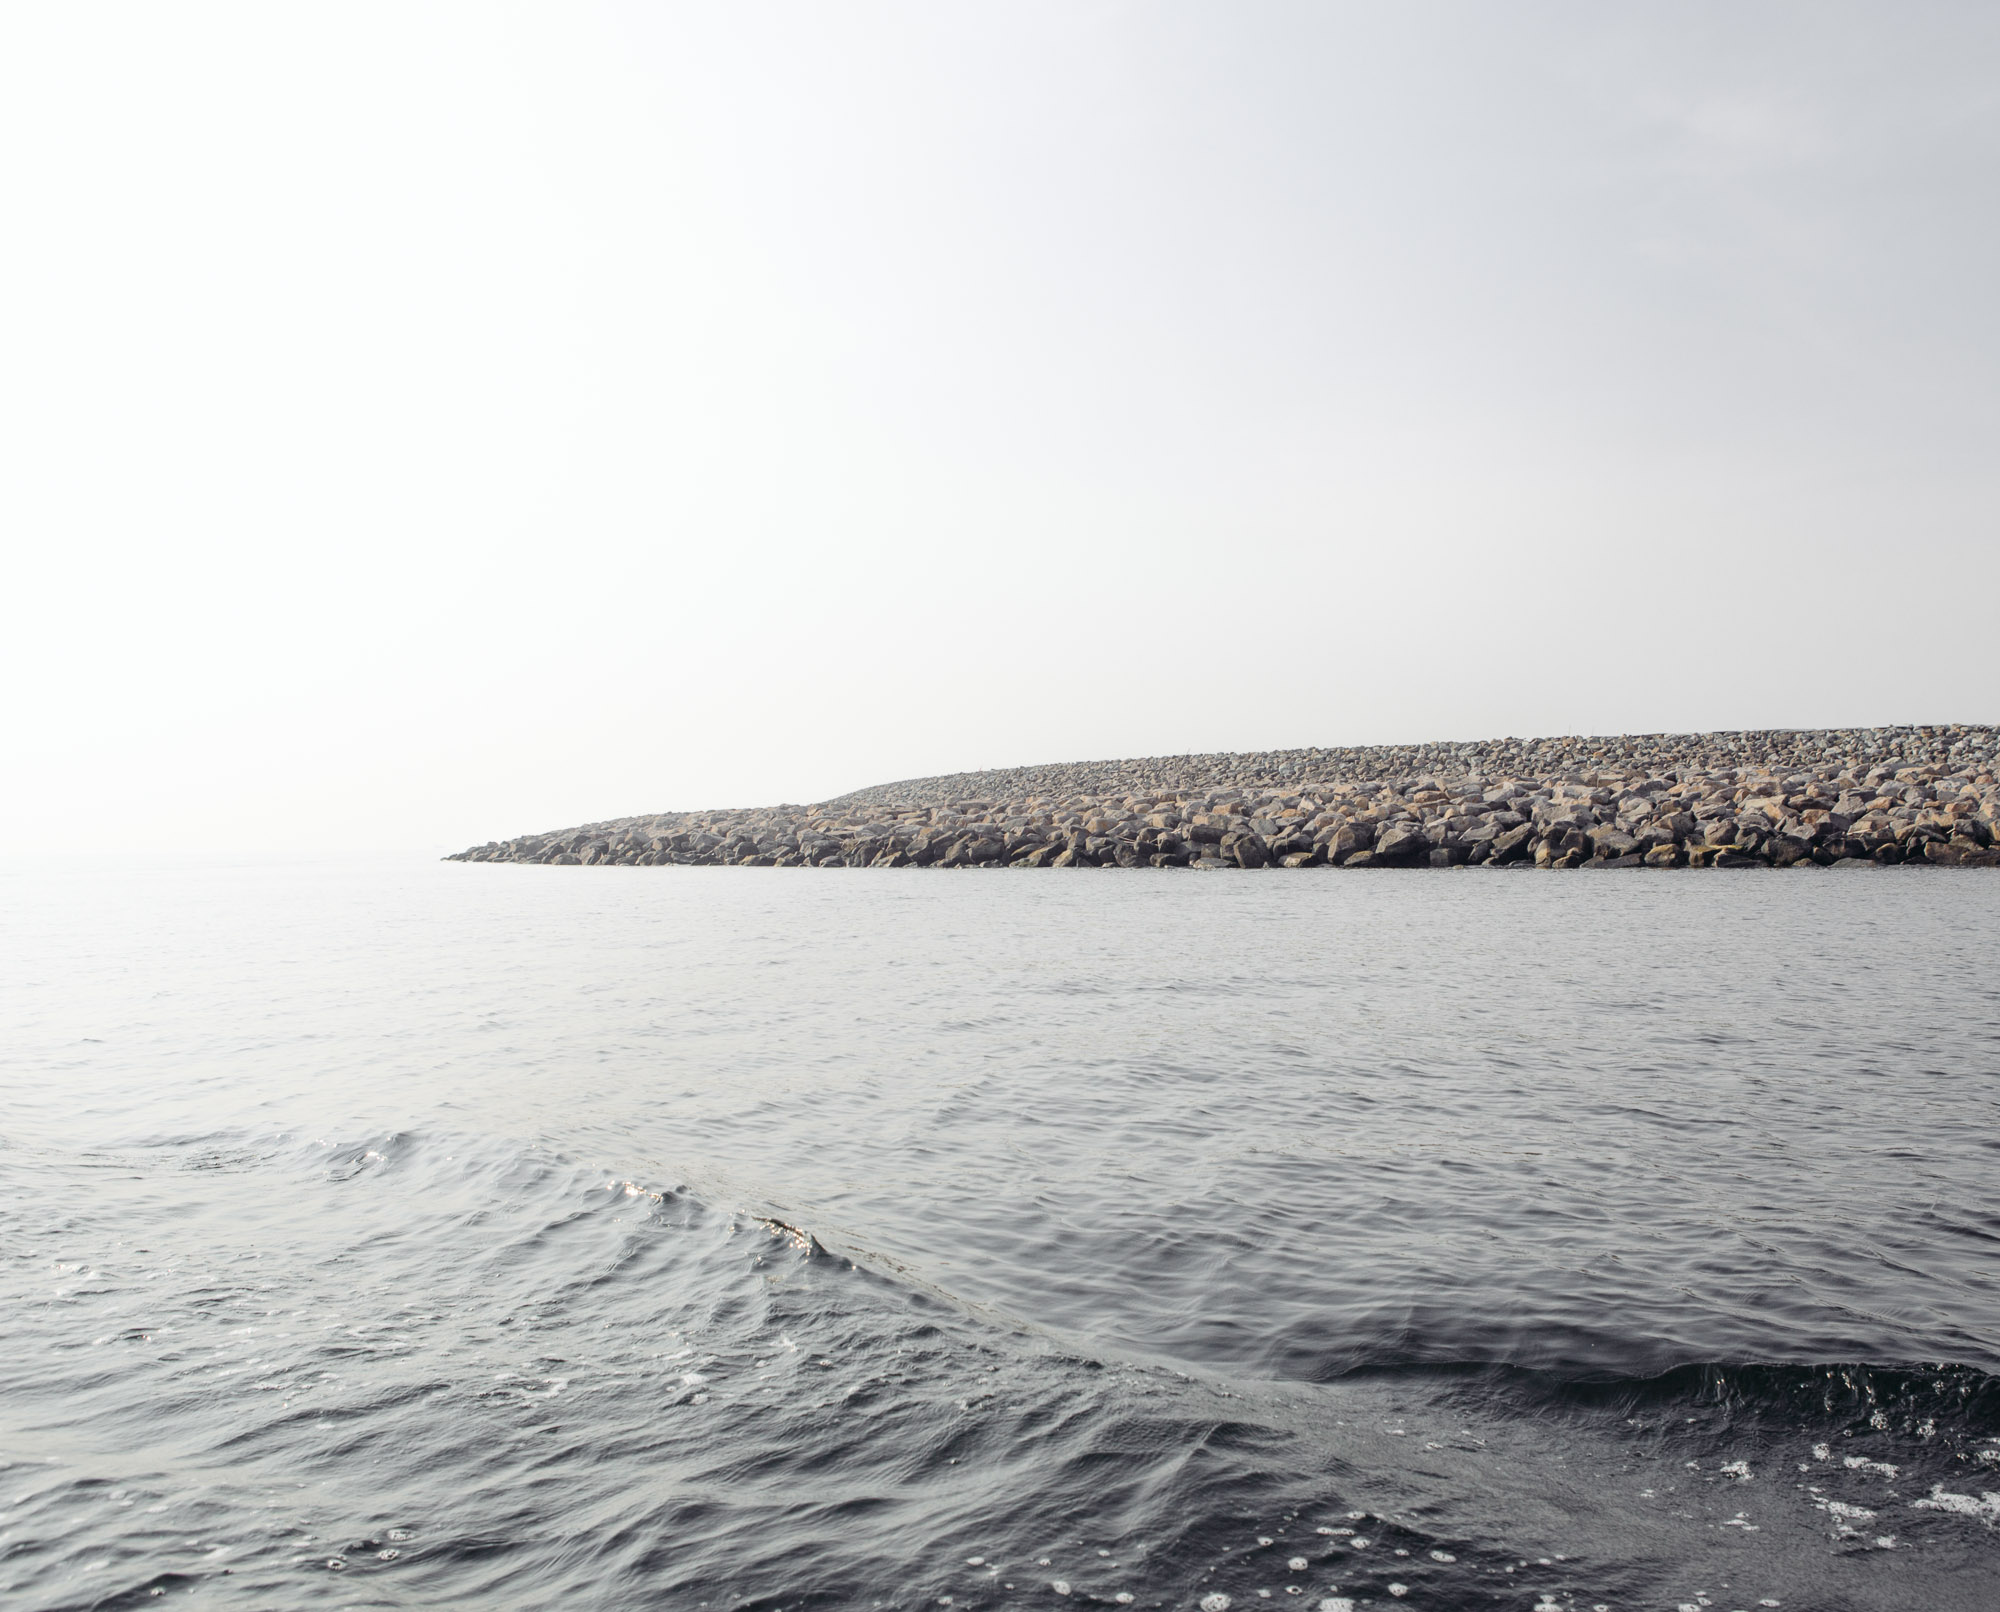 Development has already started on Island D, part of the Great Garuda project, which consist of building 17 artificial islands and a giant sea wall. Currently the work in this island is being halted for 125 days, ever since it was found to breach regulations last May. (Photo by Muhammad Fadli/GroundTruth)